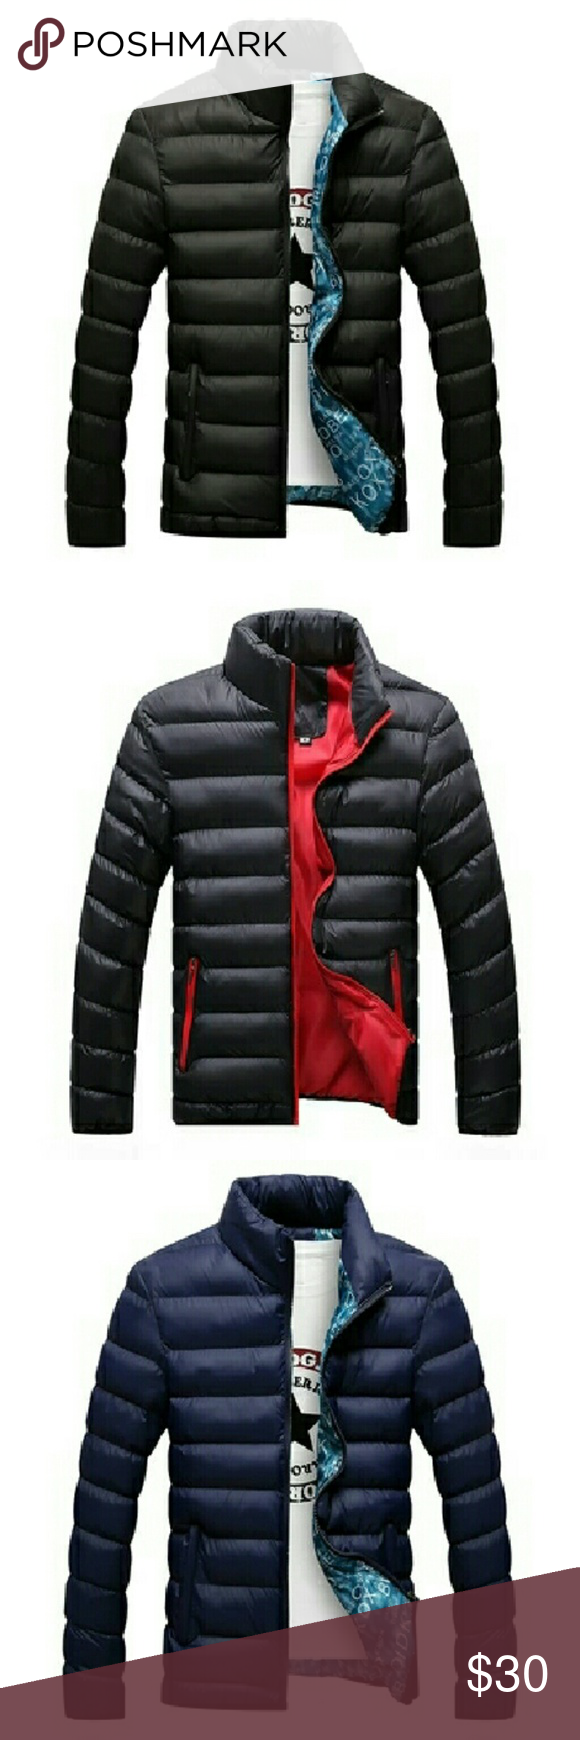 Men S Winter Coat Fashion Jacket Brand New Fixed Price Comment Email If Interested Jackets Coats Winter Jacket Men Winter Jackets Casual Coat [ 1740 x 580 Pixel ]